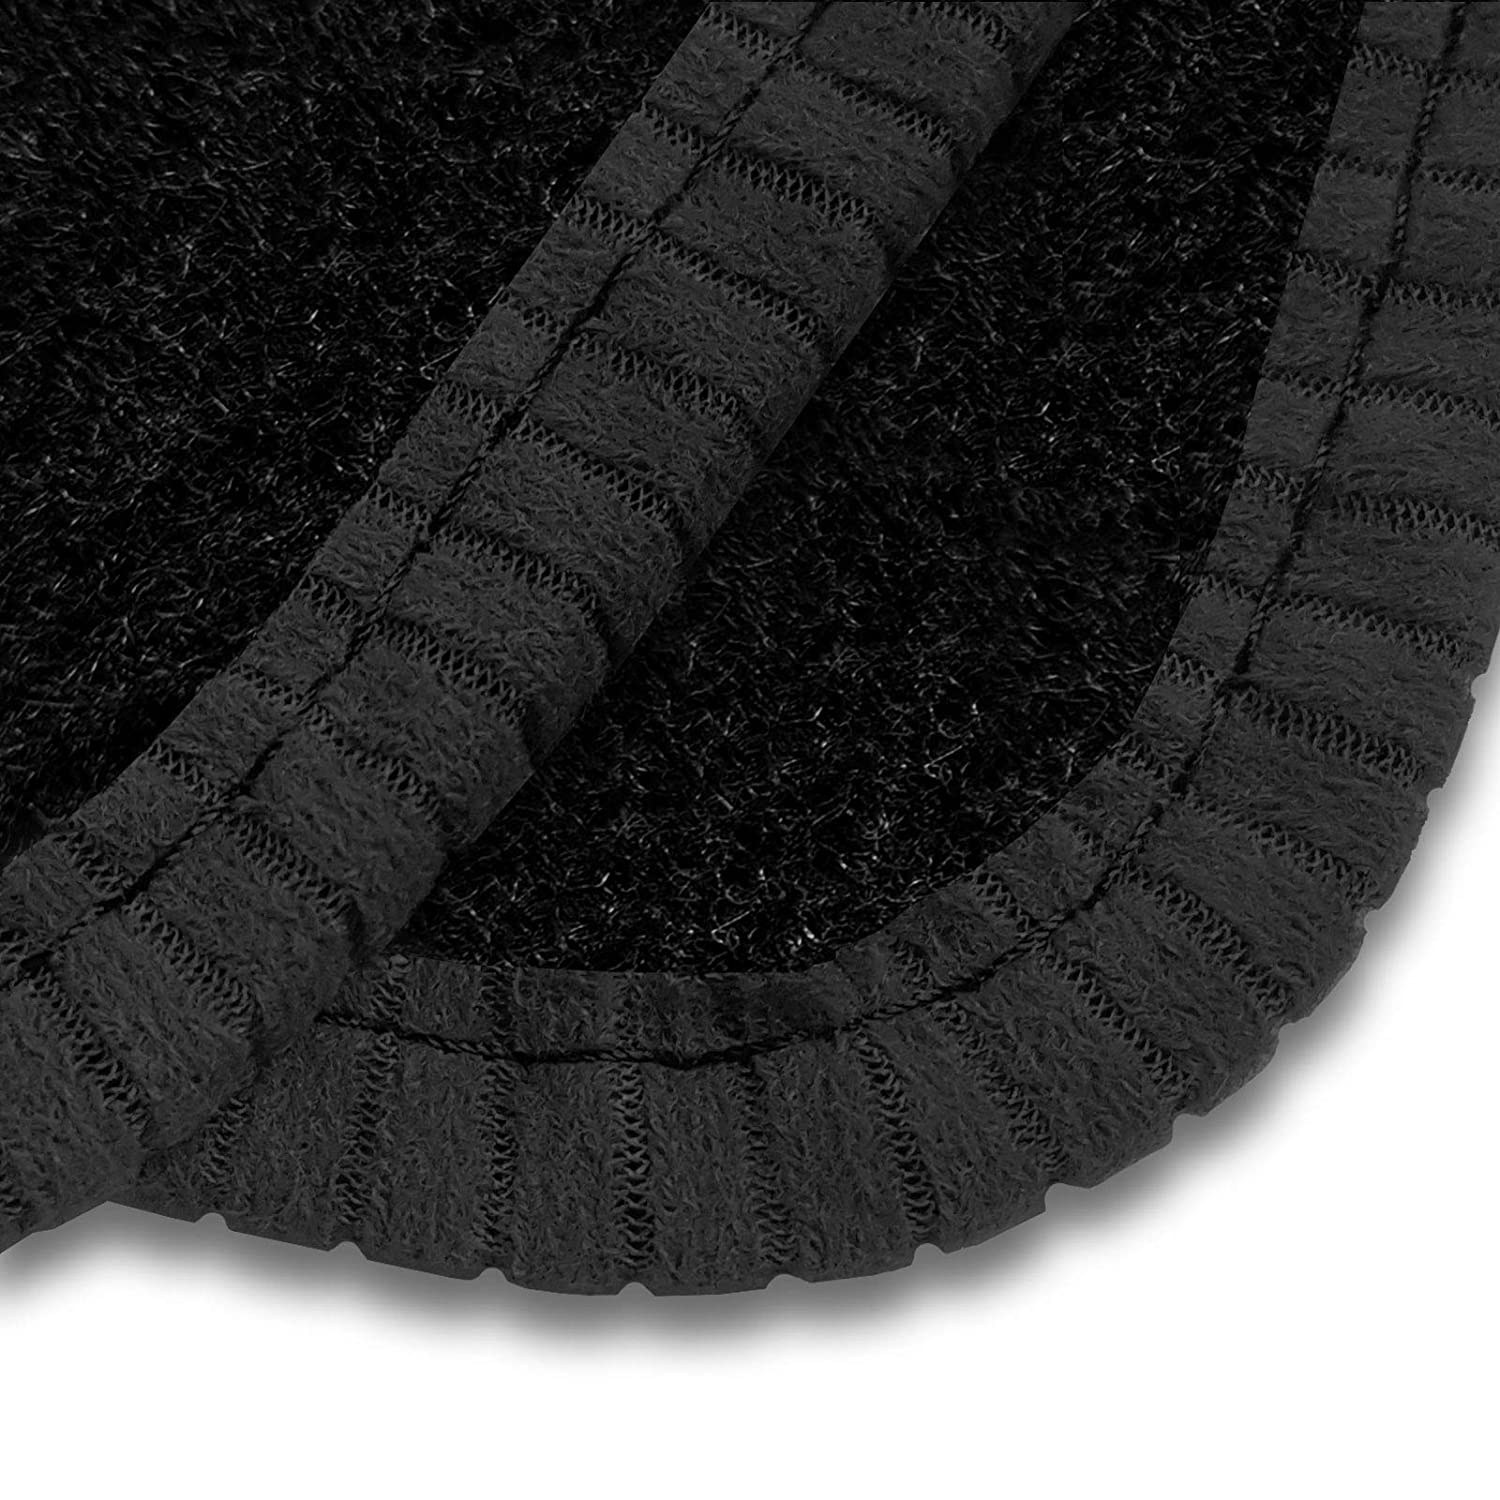 2013+ Car Mats to Fit Octavia Black Tailored Car Mats with Black Trim /& Black Double Thickness Rectangle Heel Pad